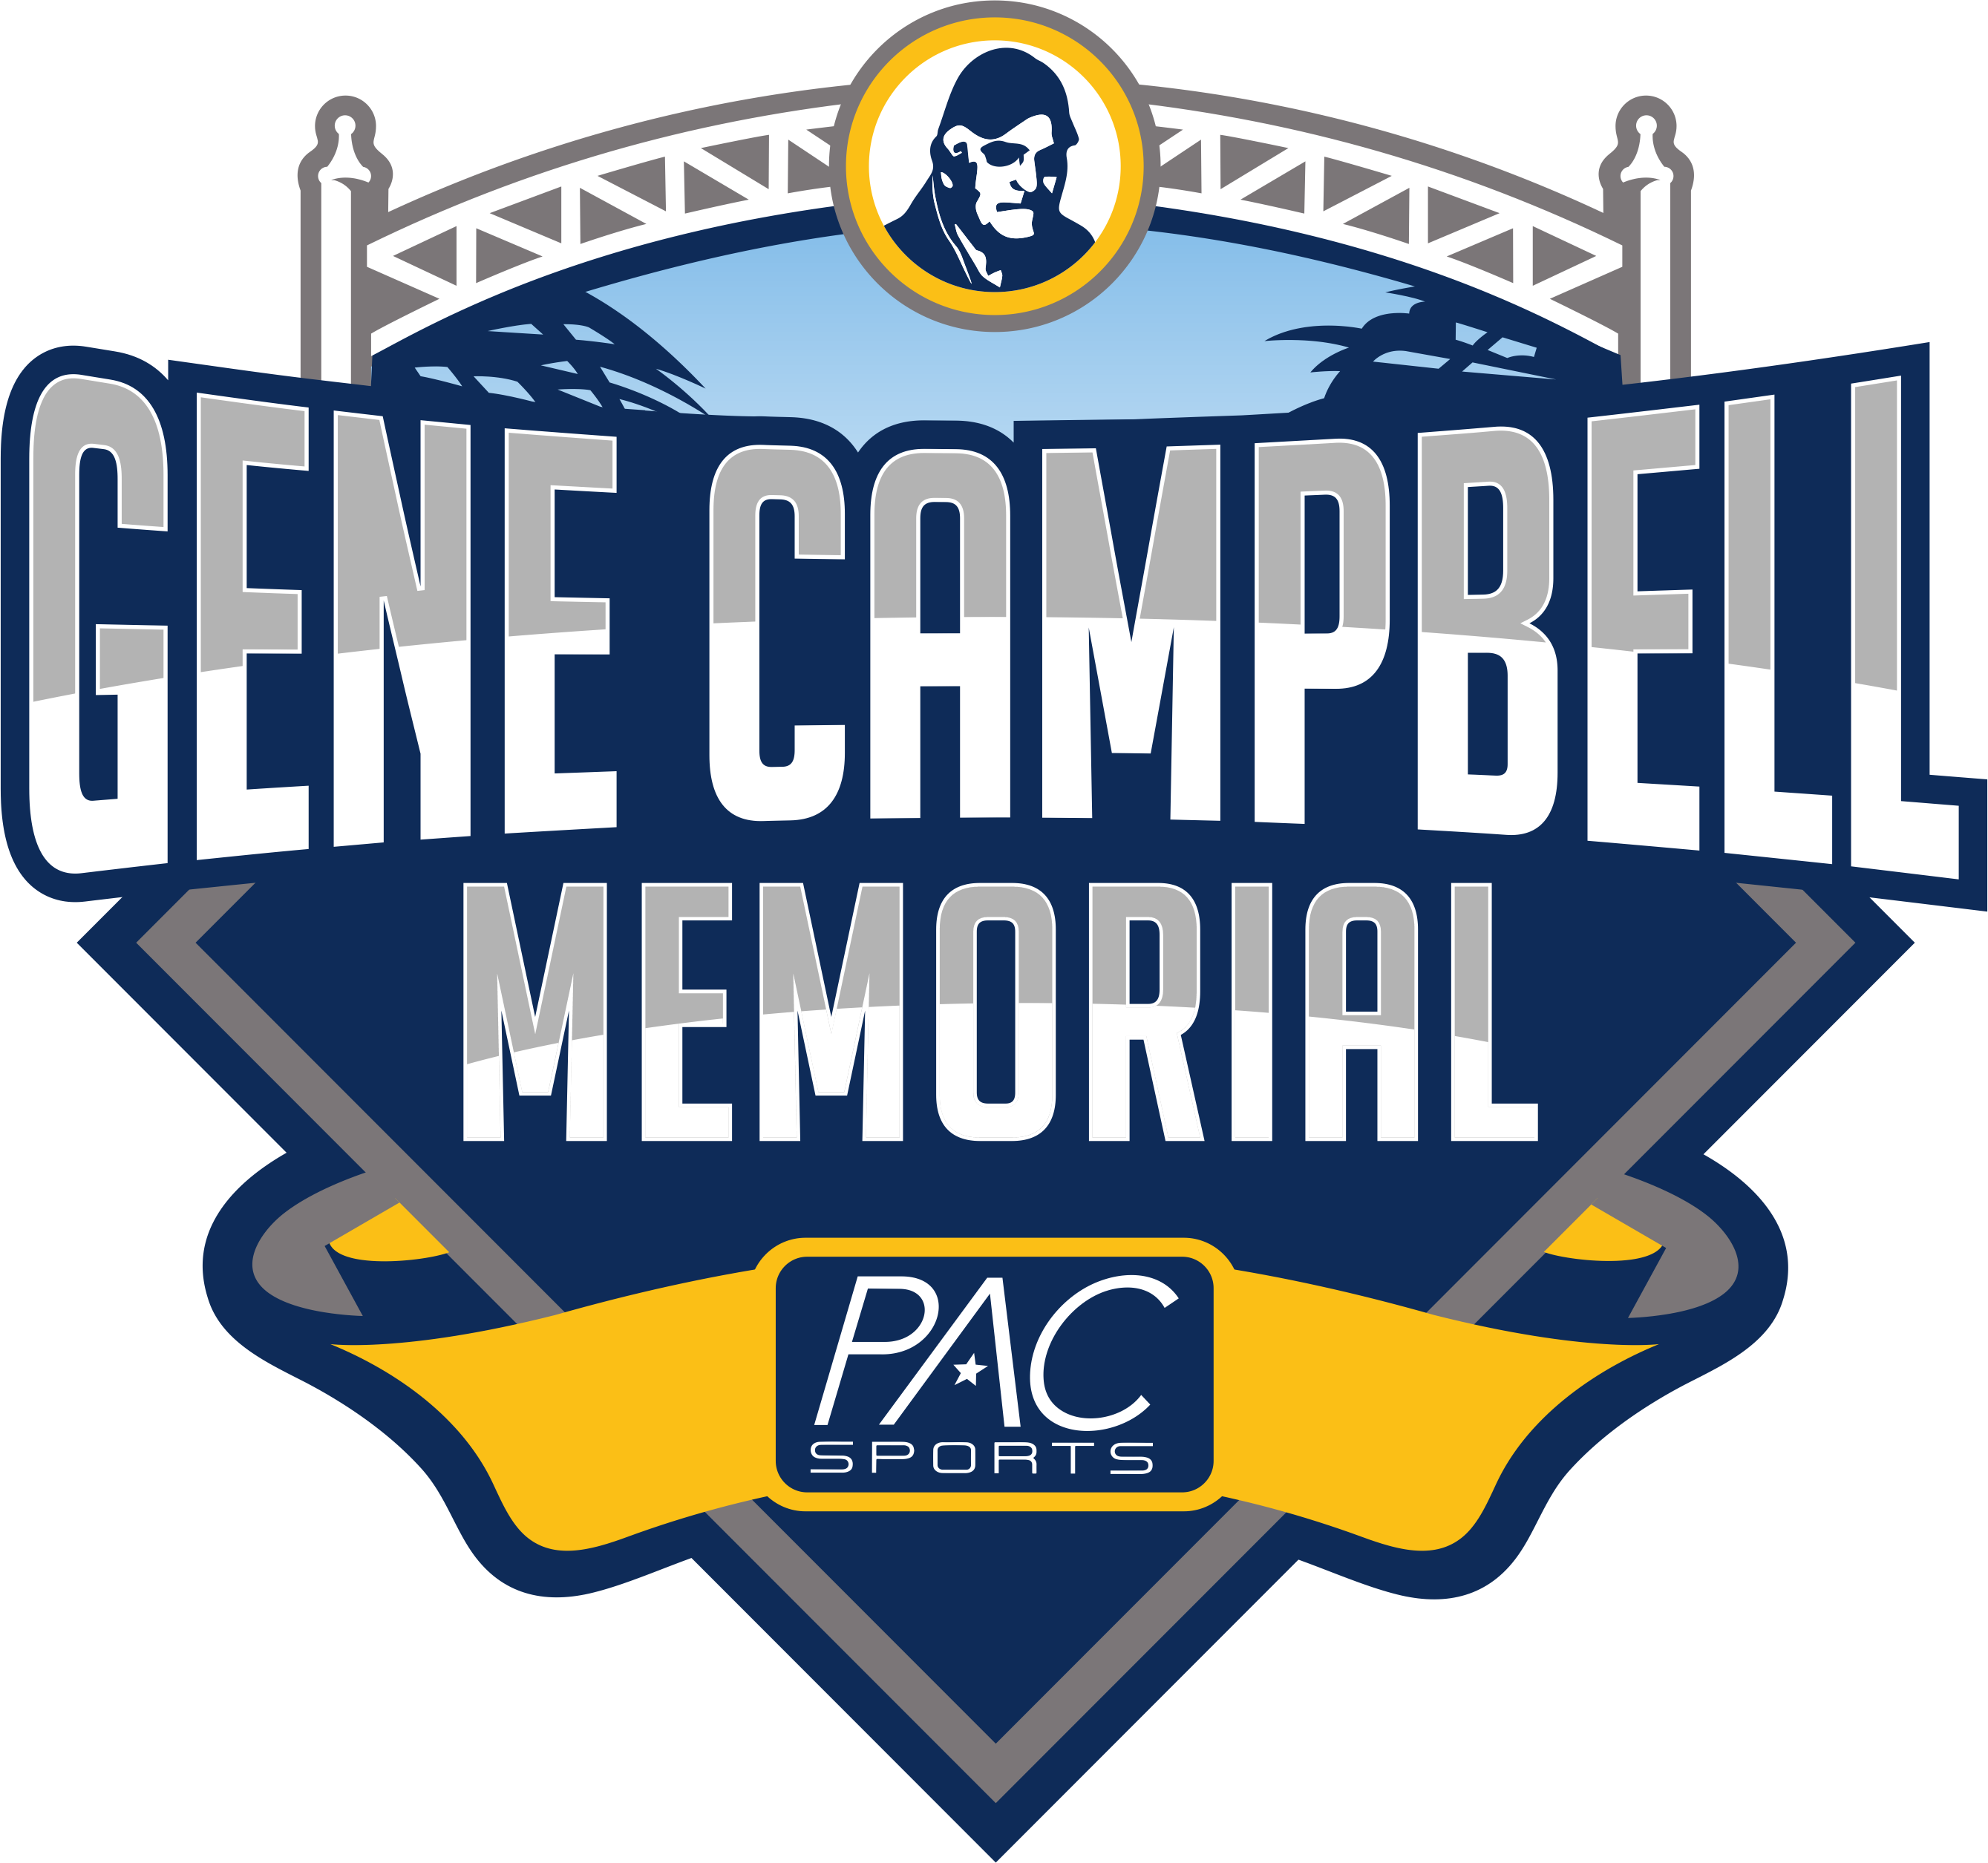 Gene_Campbell.png